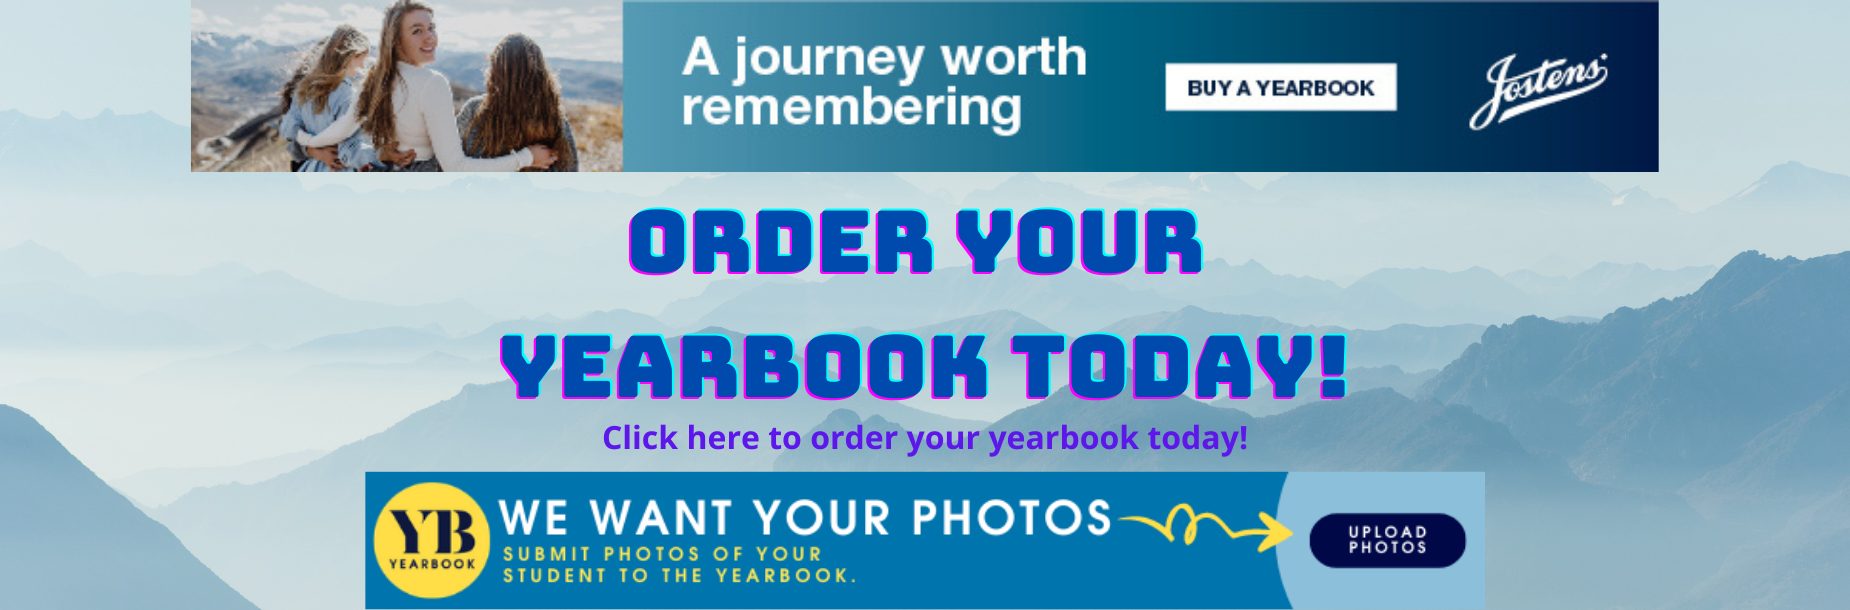 Order a yearbook today banner, click on banner to order